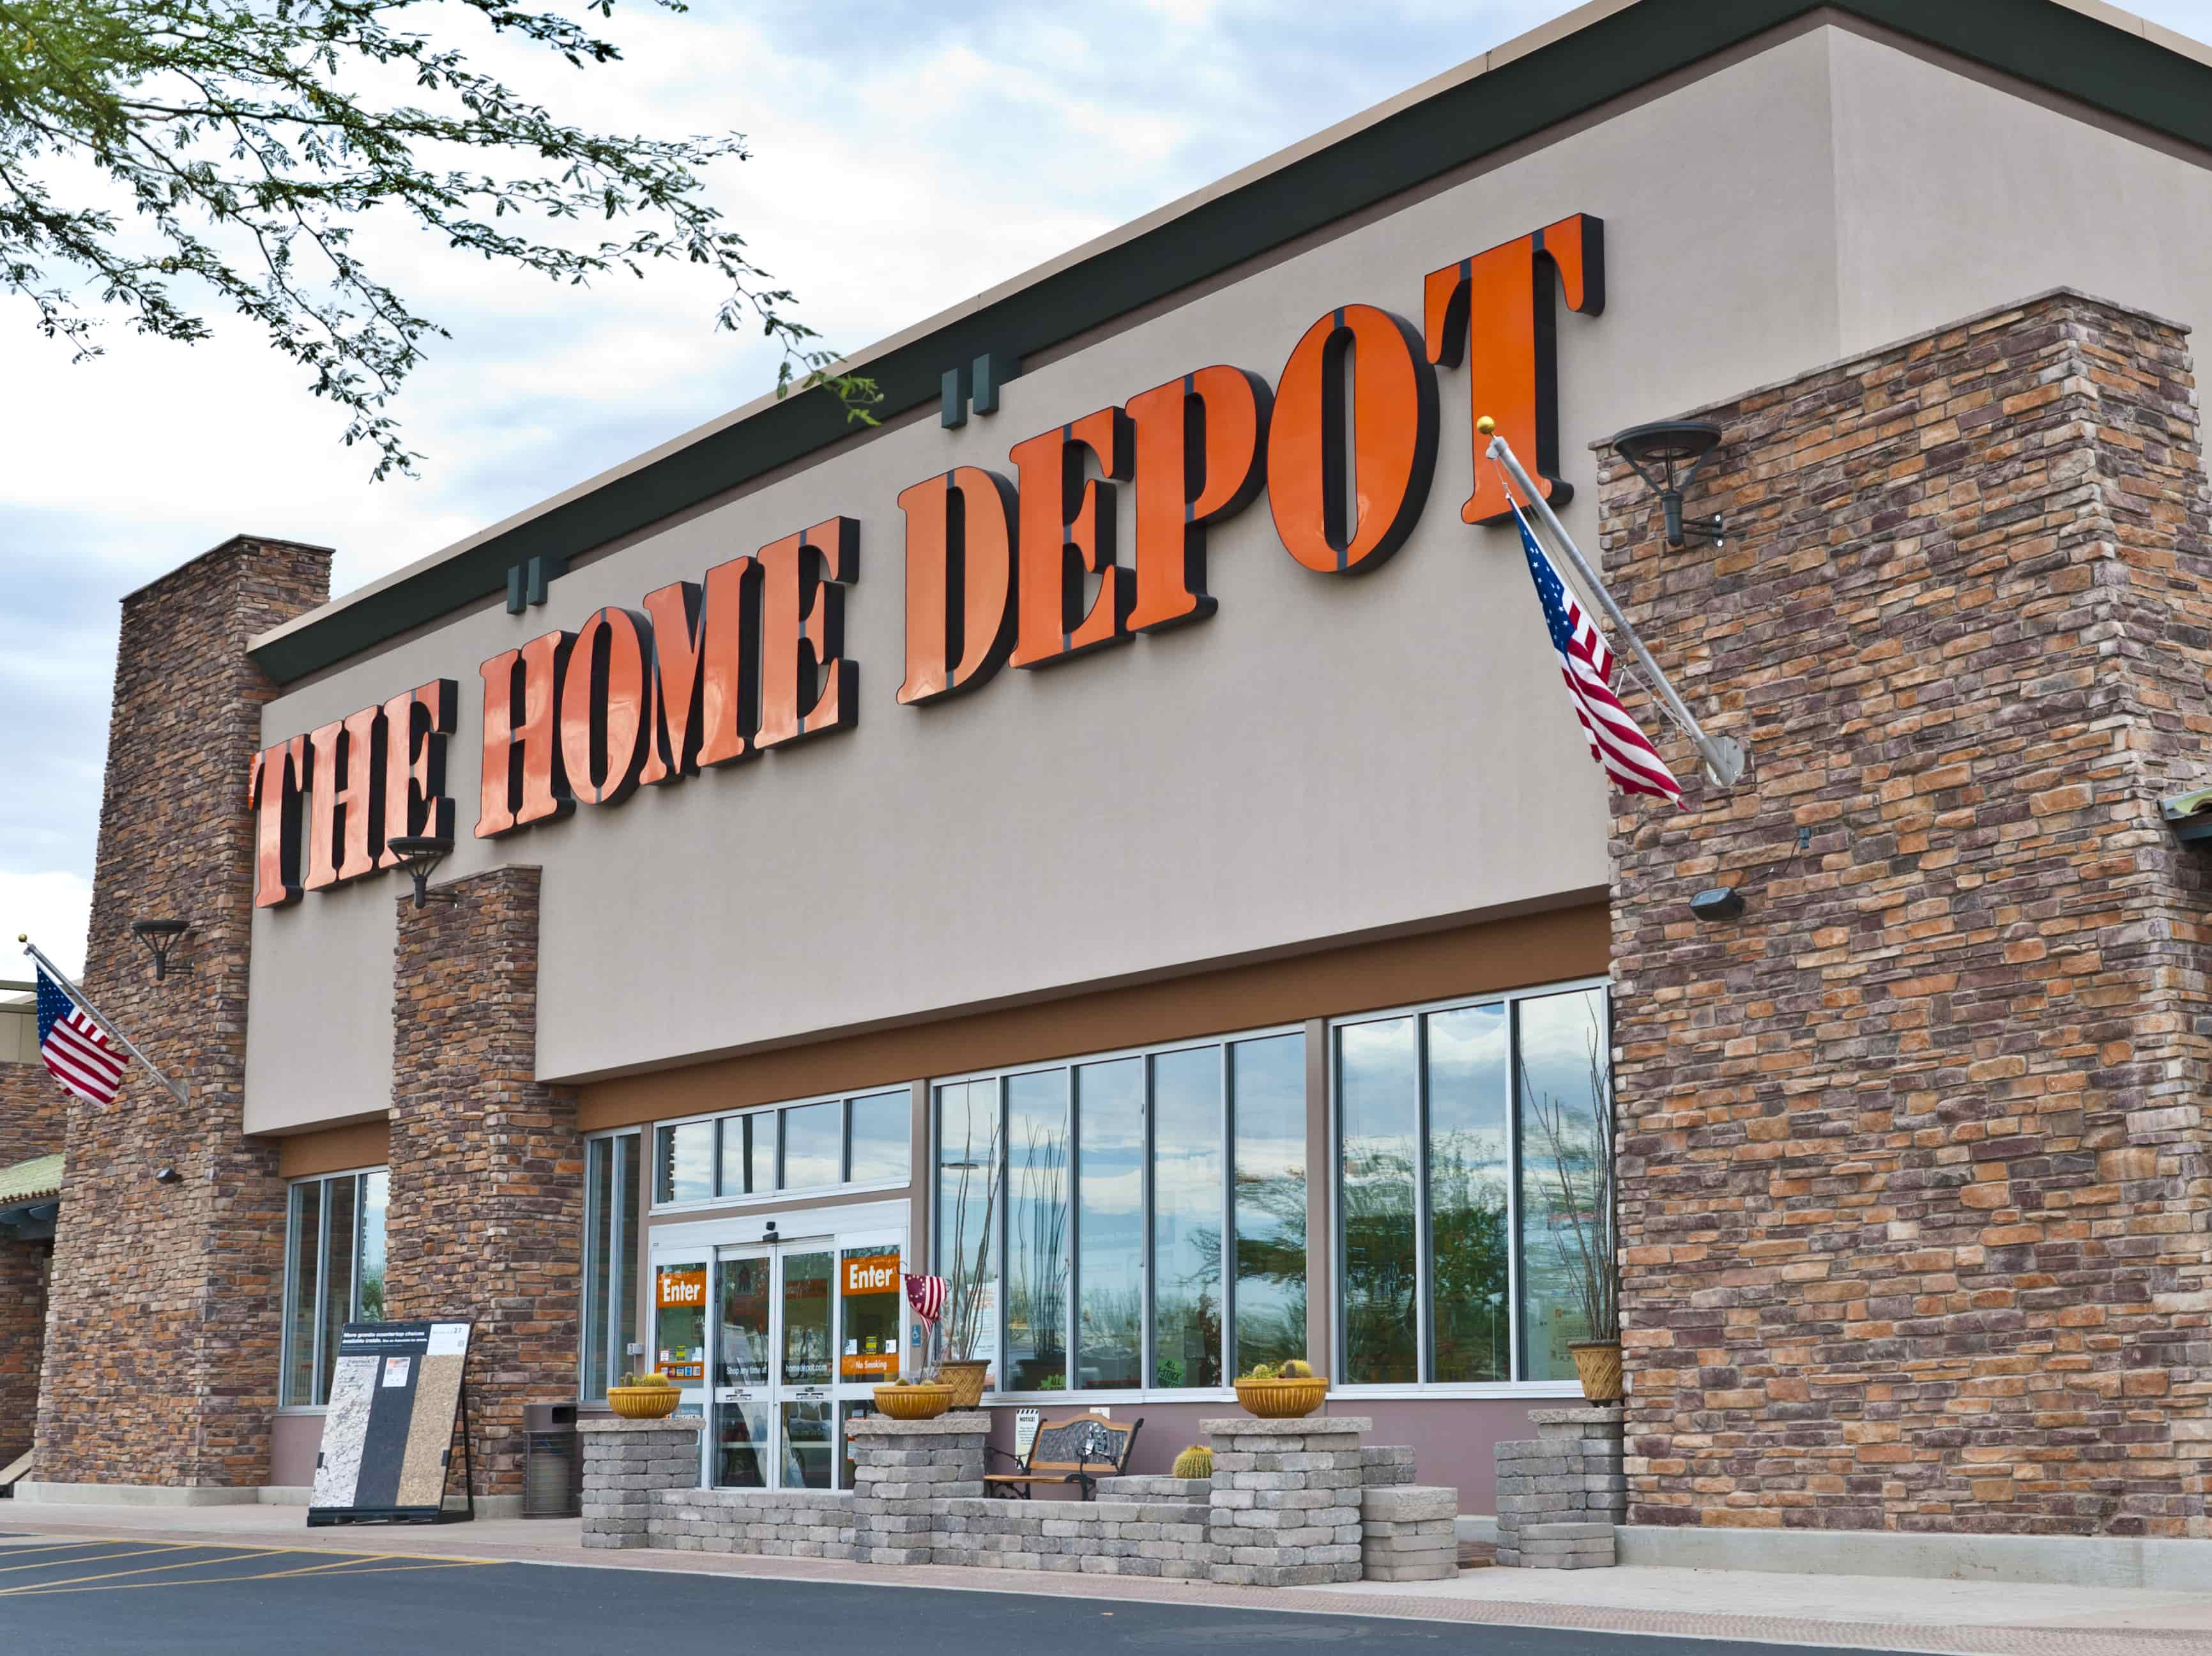 How to sell to home depot malvernweather Choice Image